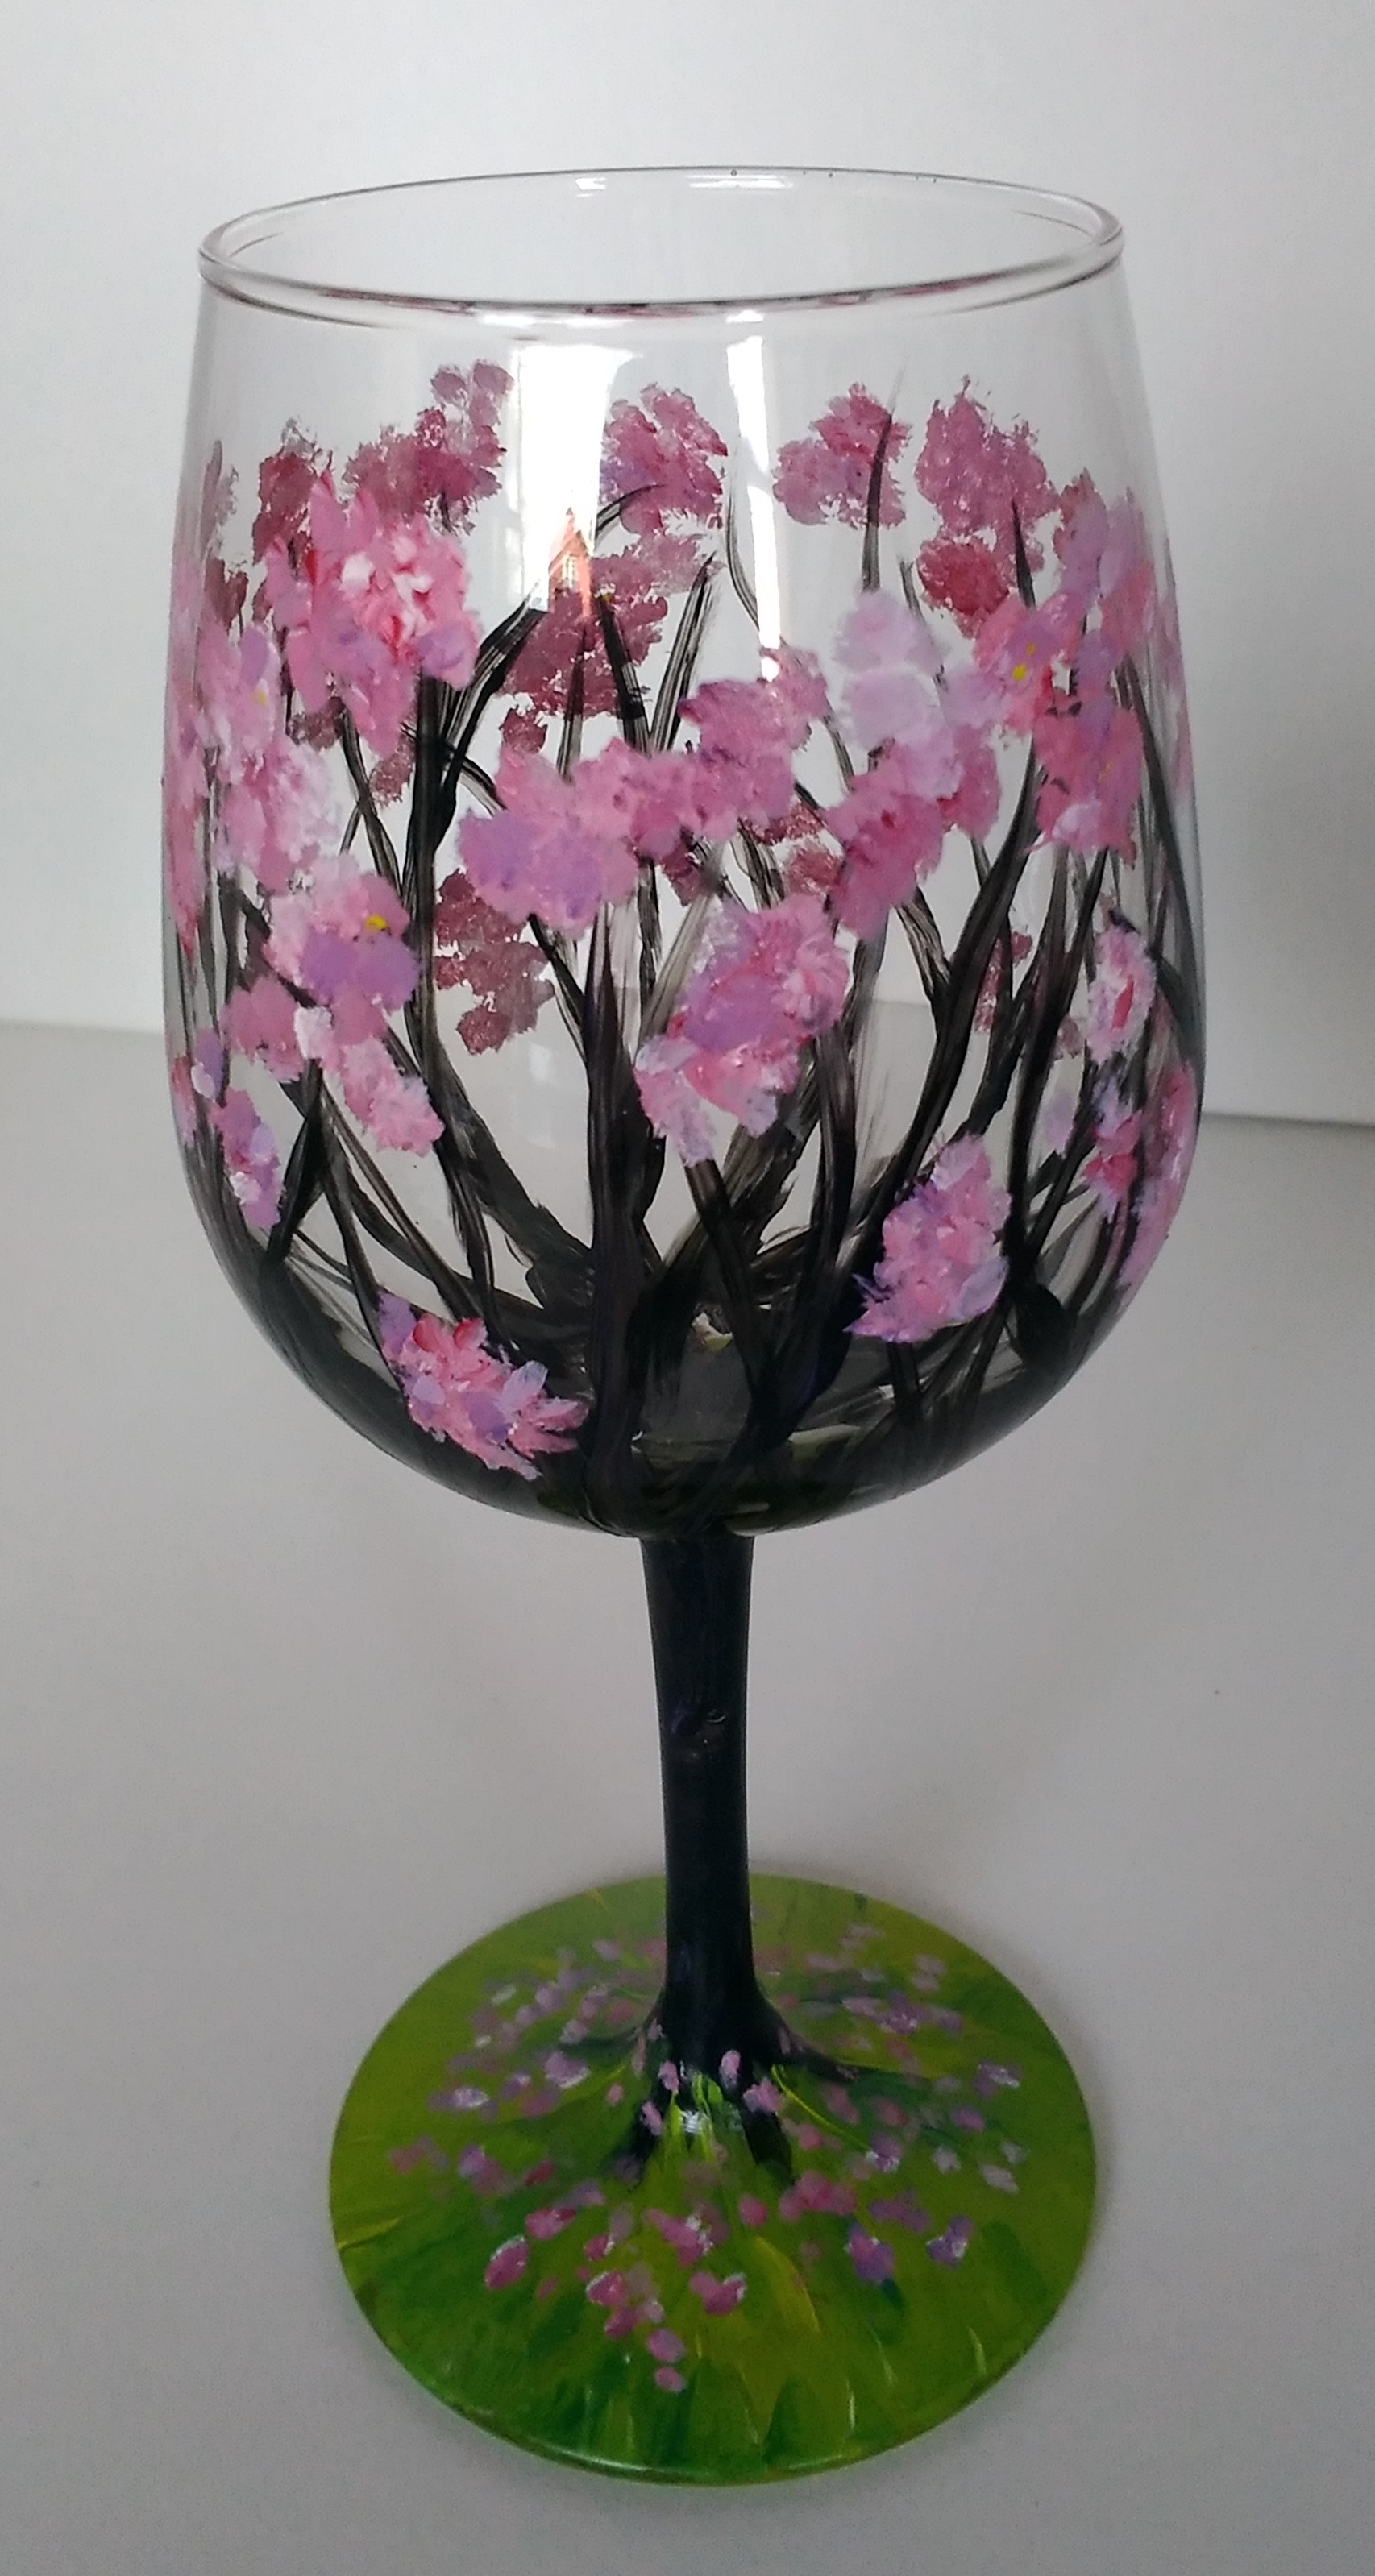 cherry-blossoms-wine-glass-malowany